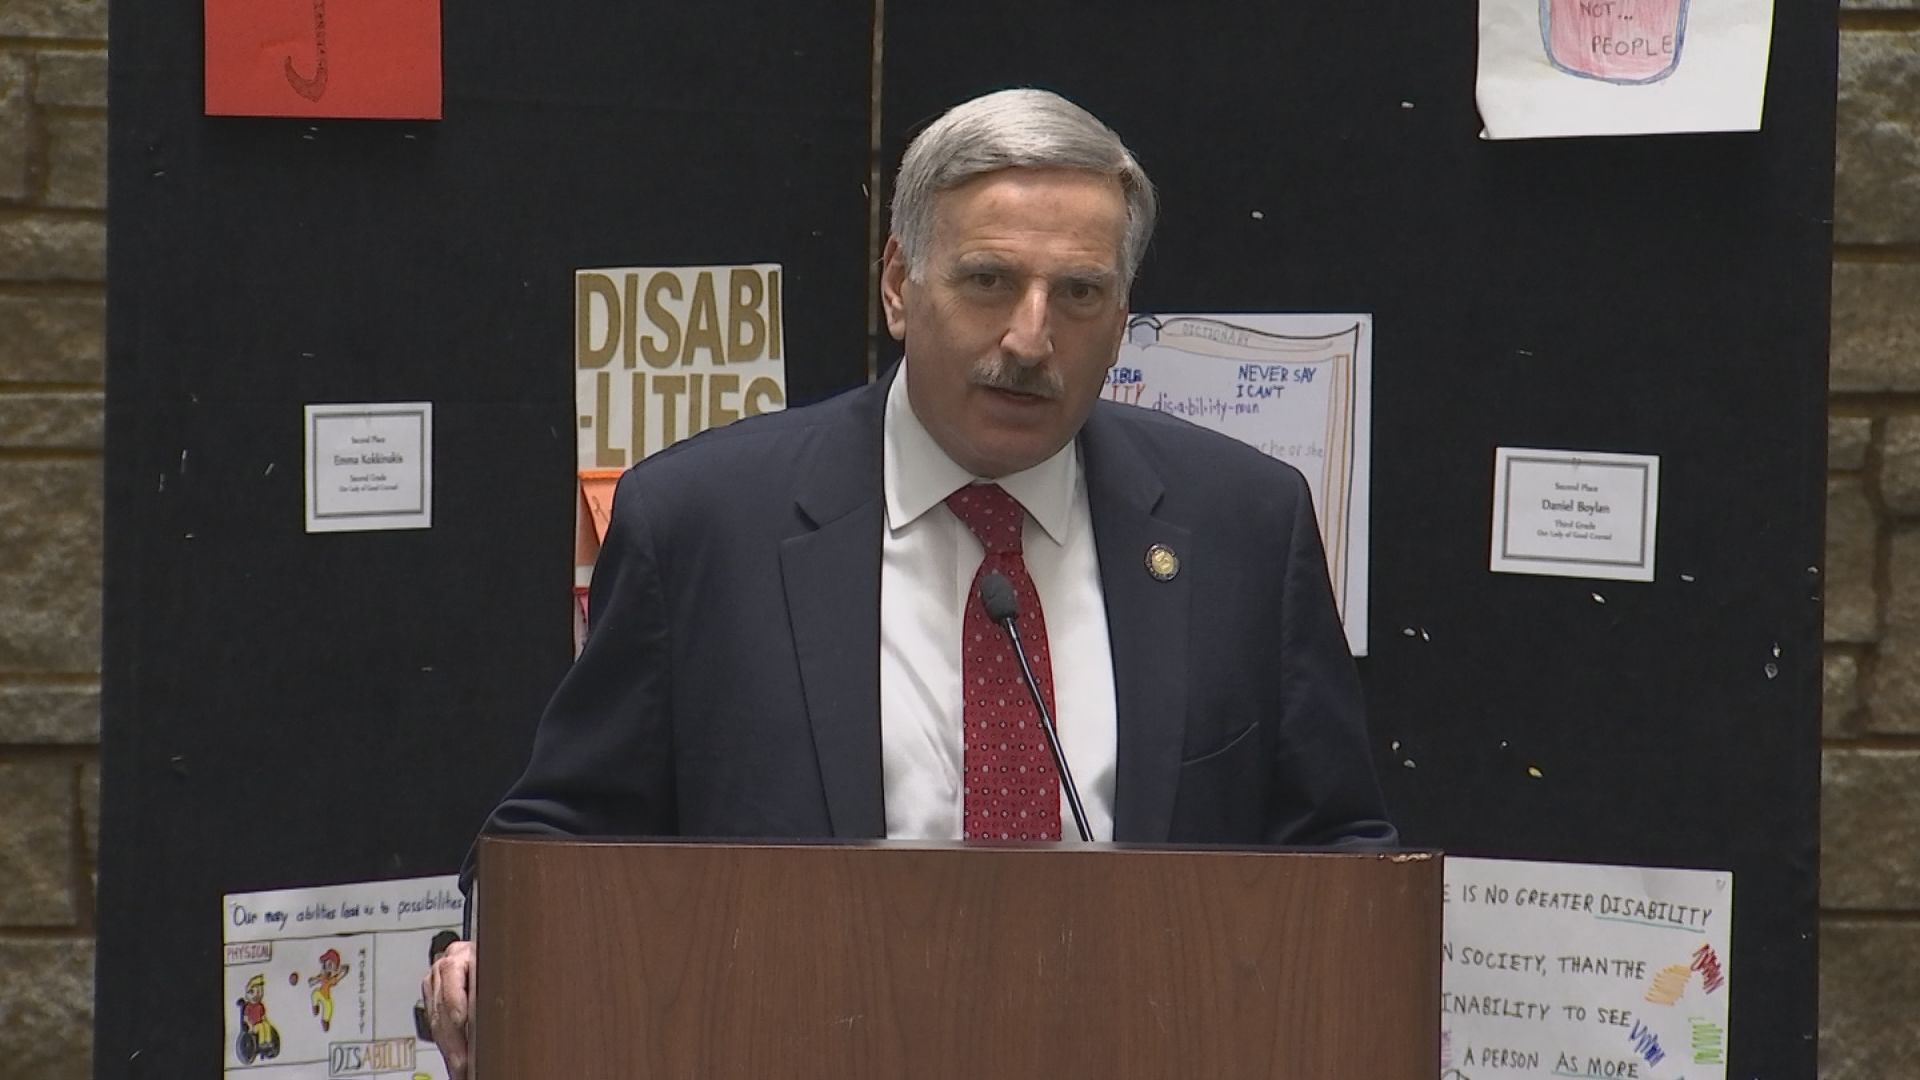 Weprin On Disabilities Awareness Day